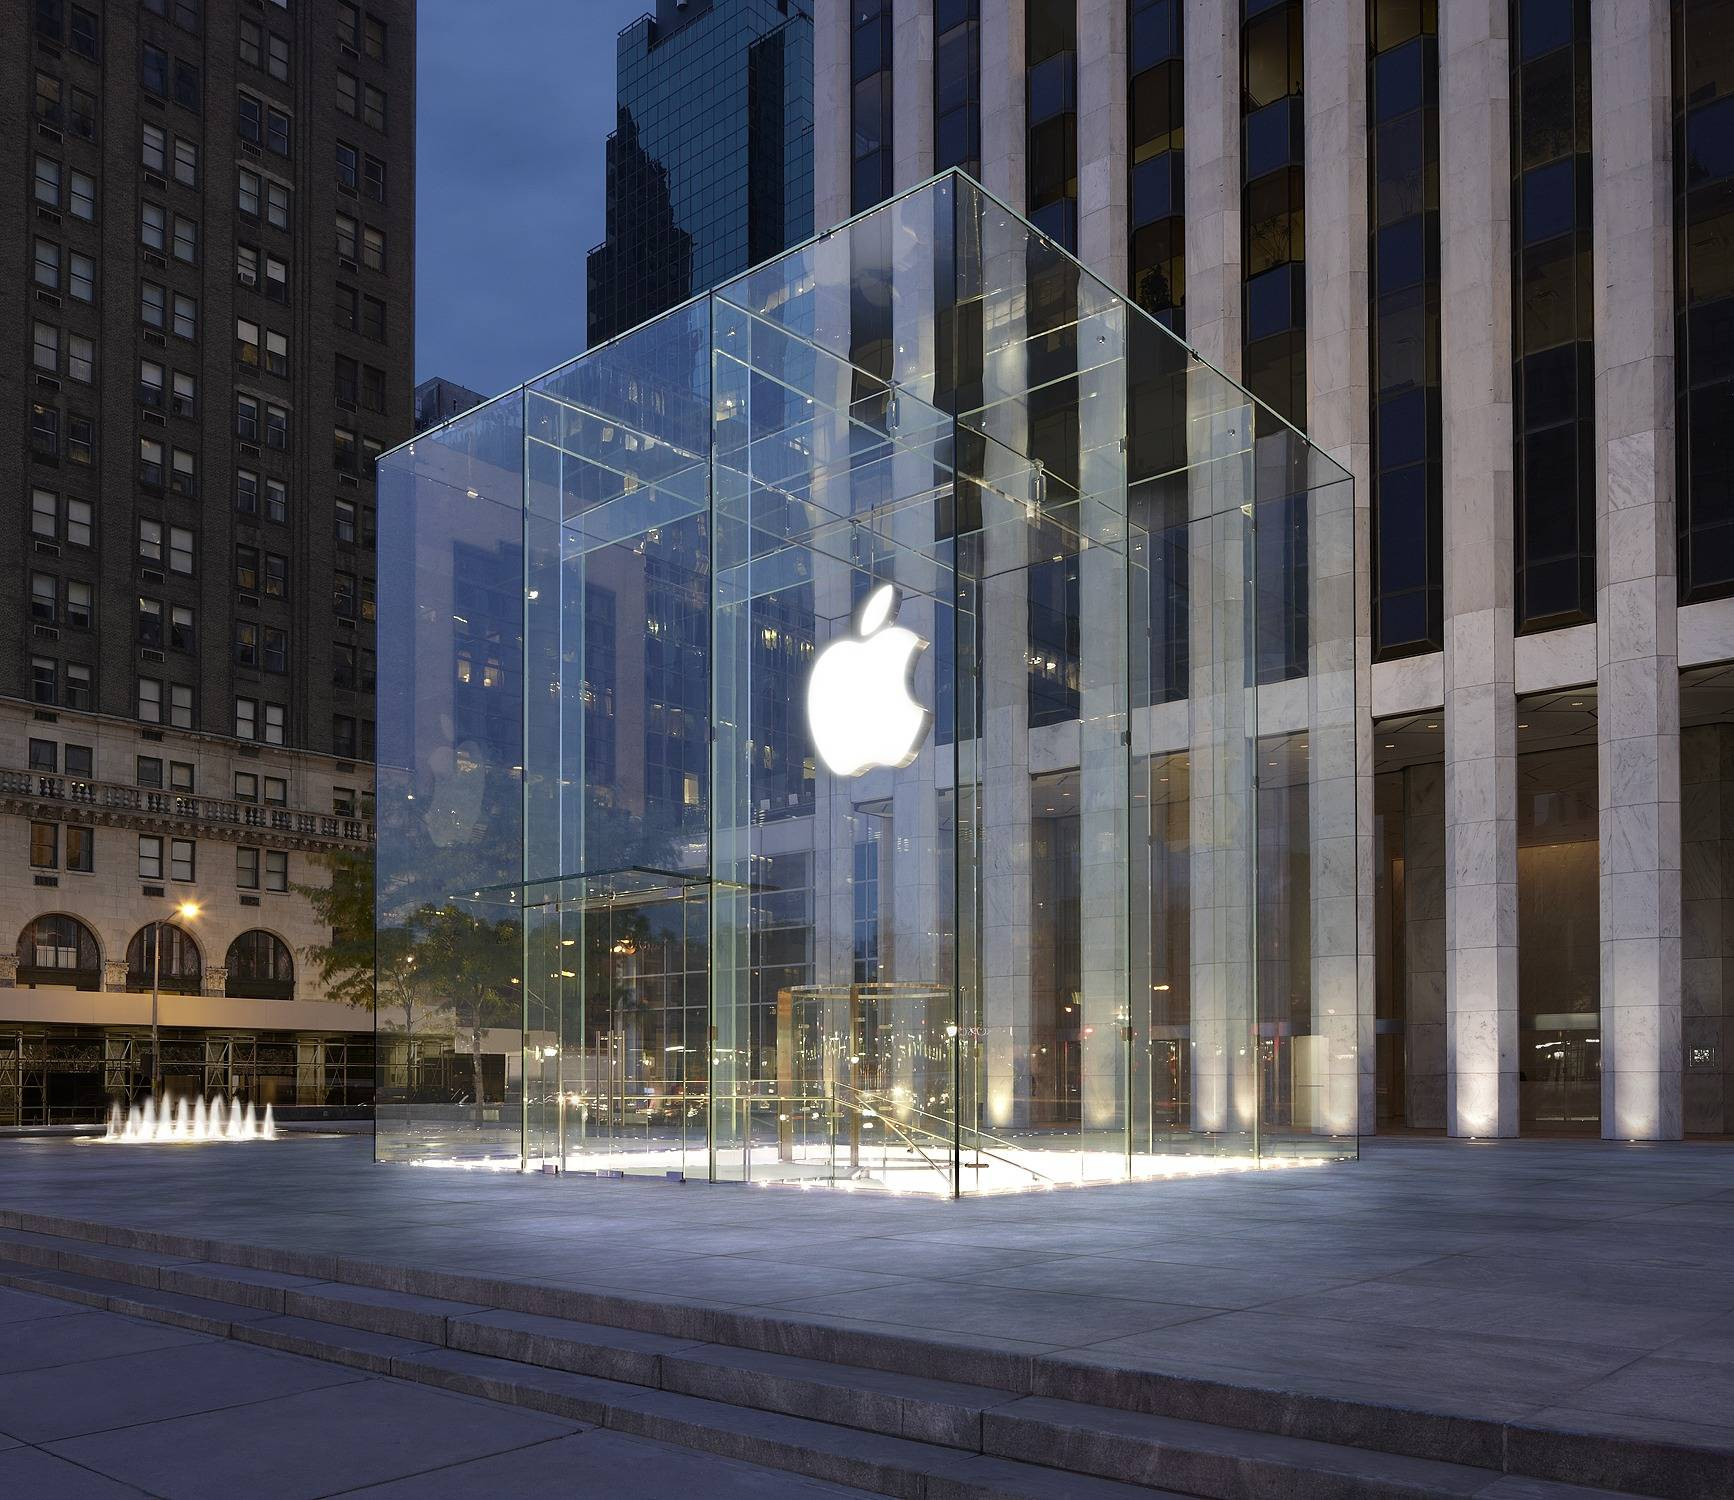 1352647886_apple-computer-stores-company-inc-mission-statement-.jpg